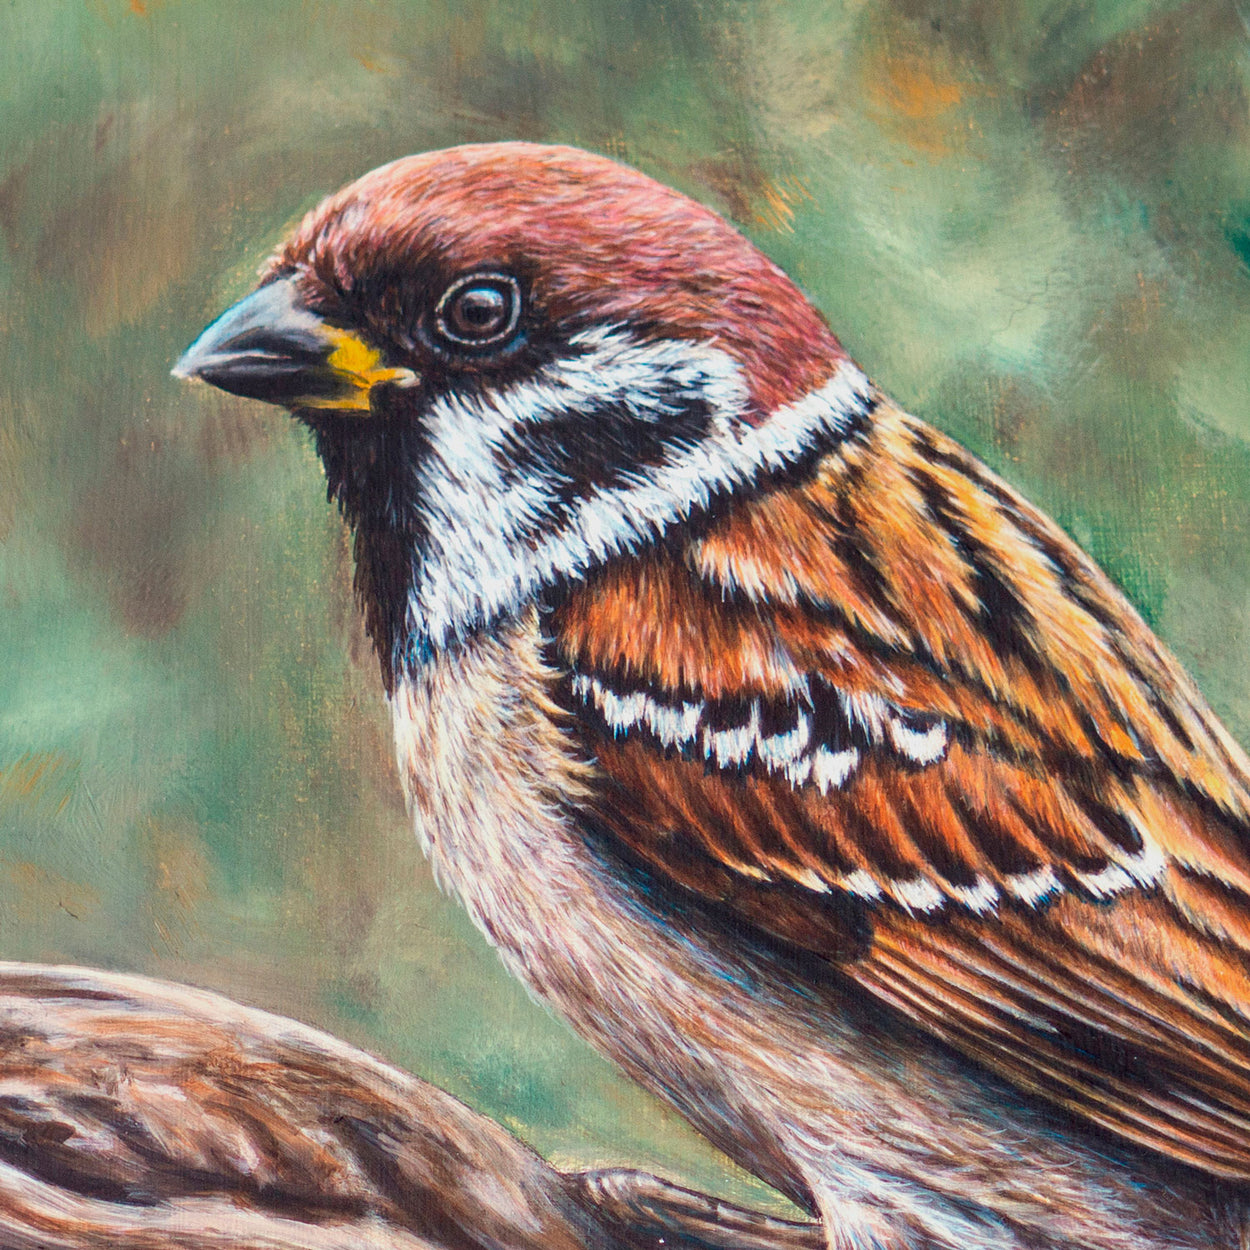 Tree Sparrow Painting Close-up 1 - The Thriving Wild